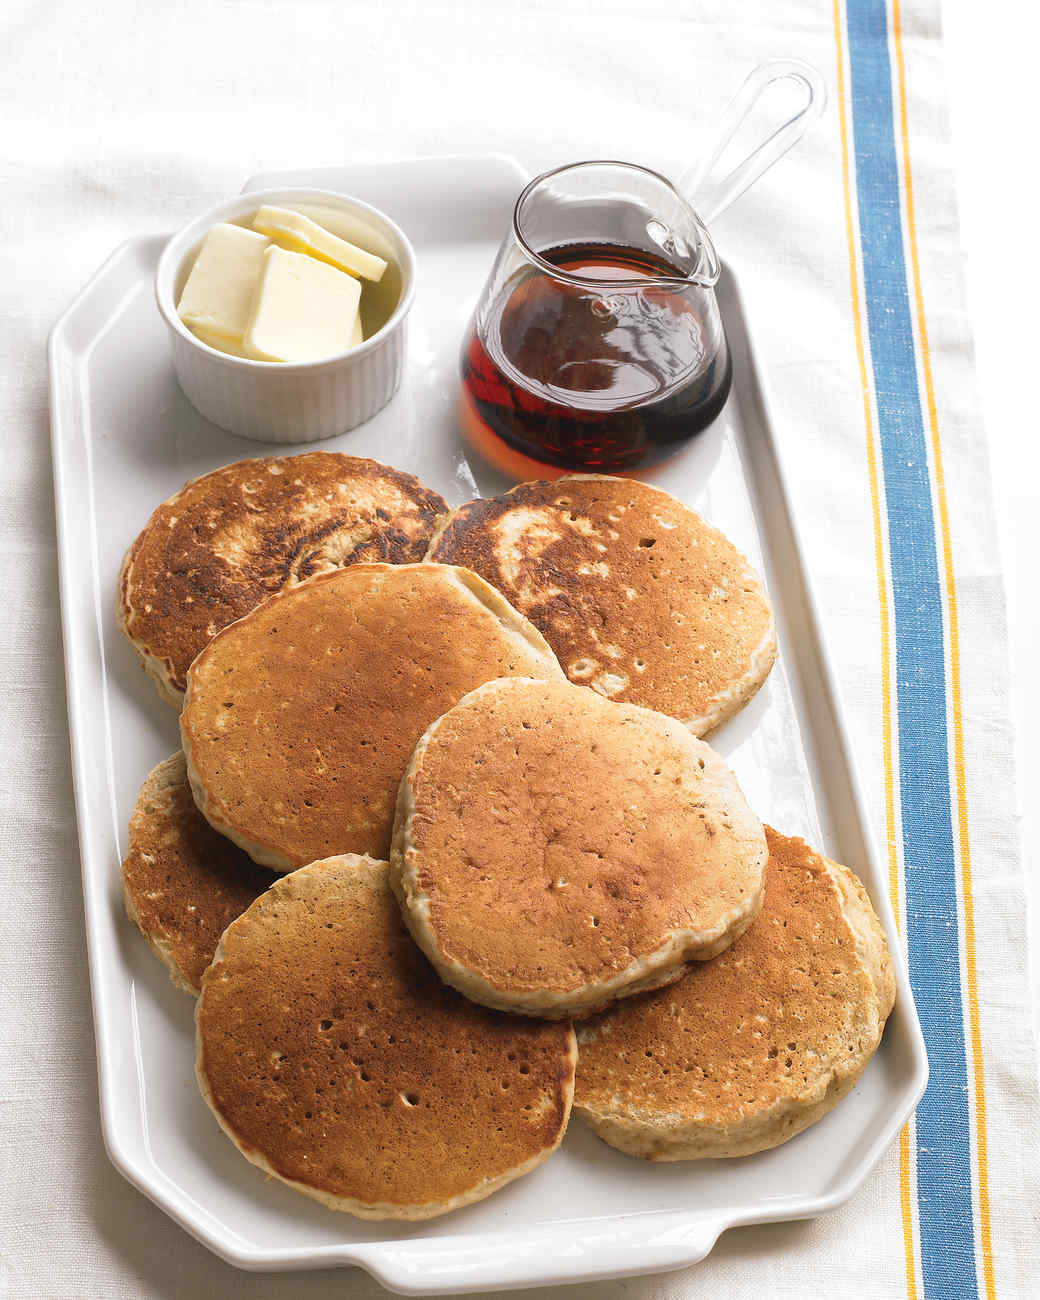 Oatmeal Pancakes with Cinnamon